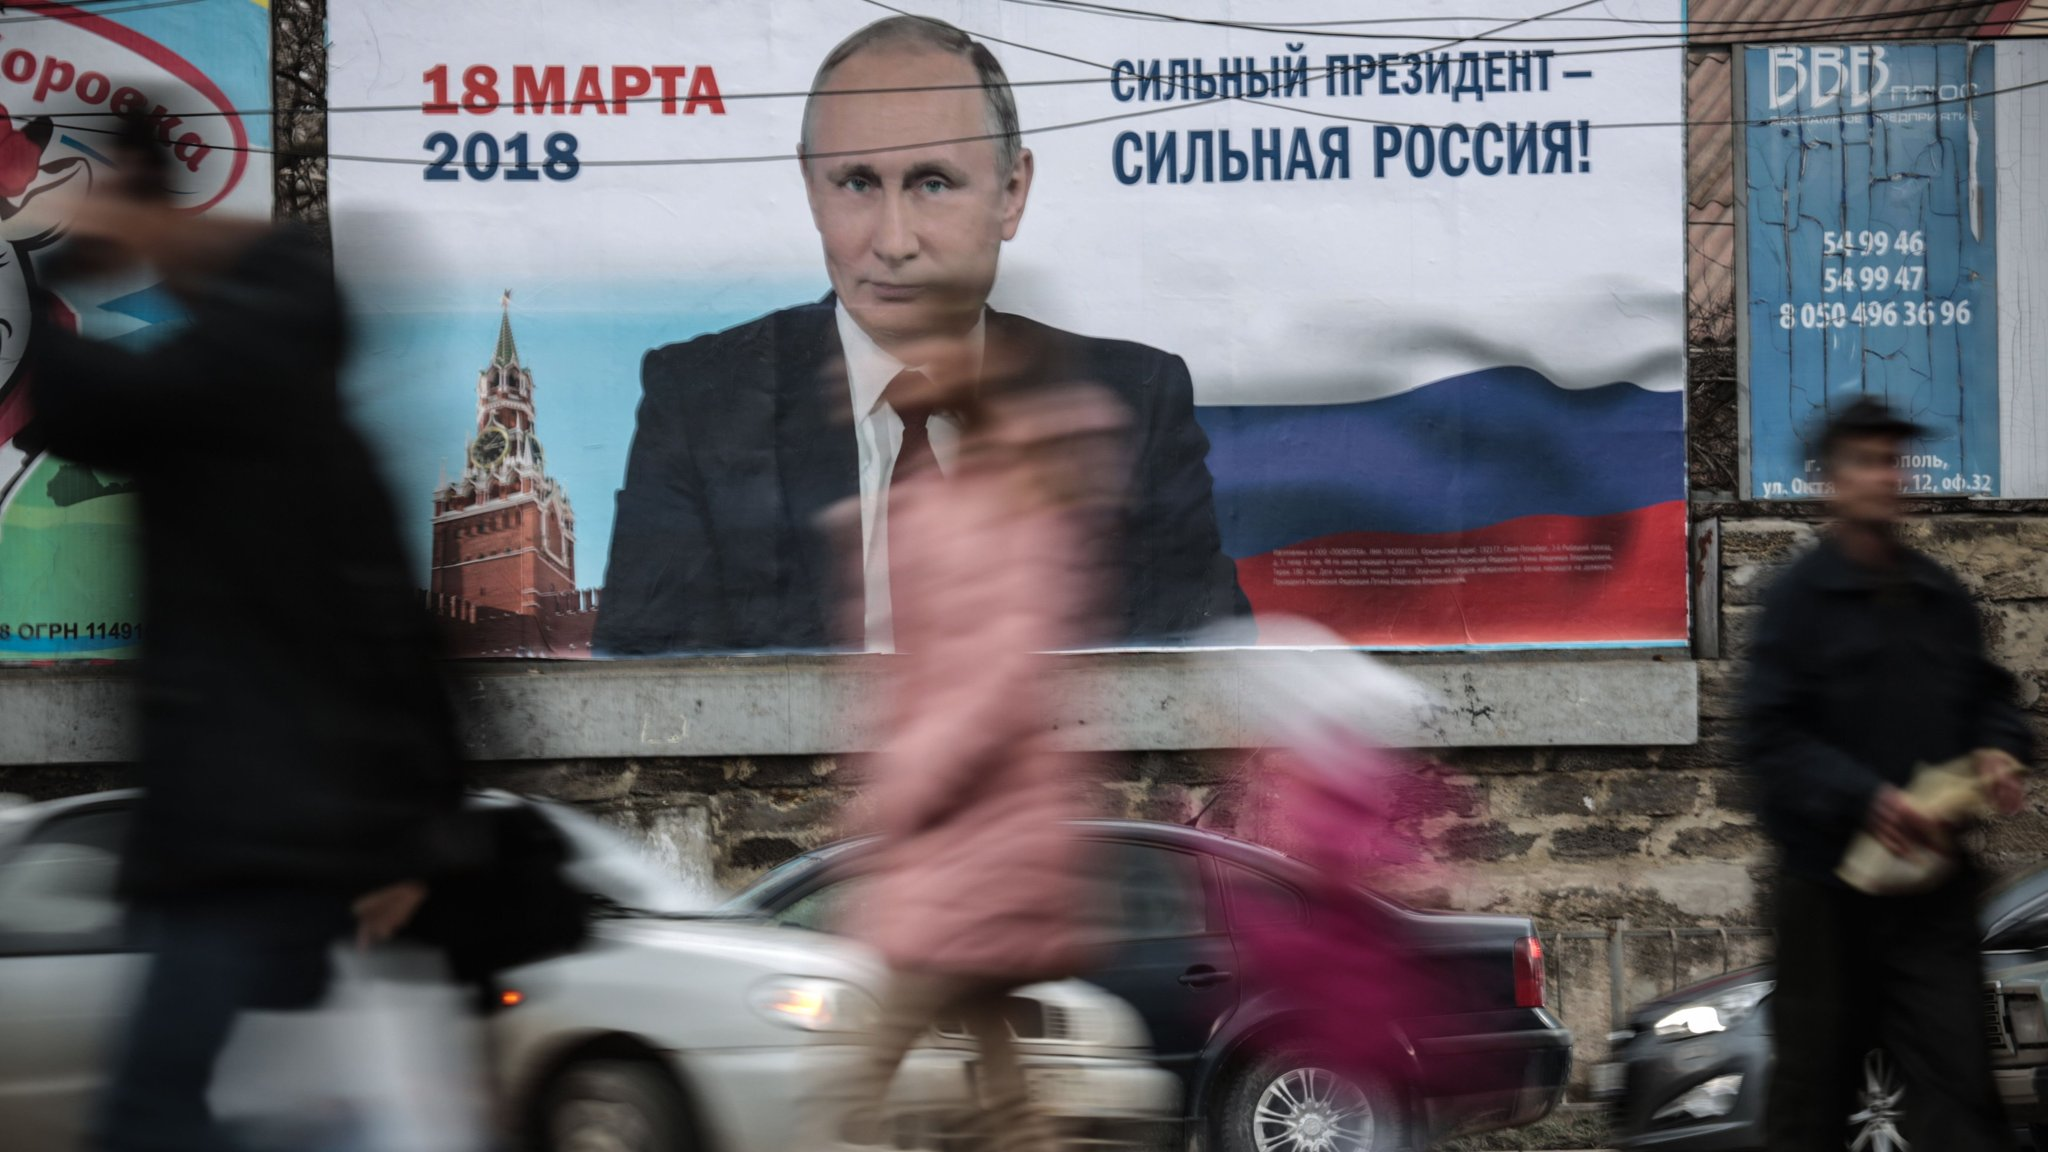 Putin opponents face dilemma over call to boycott election